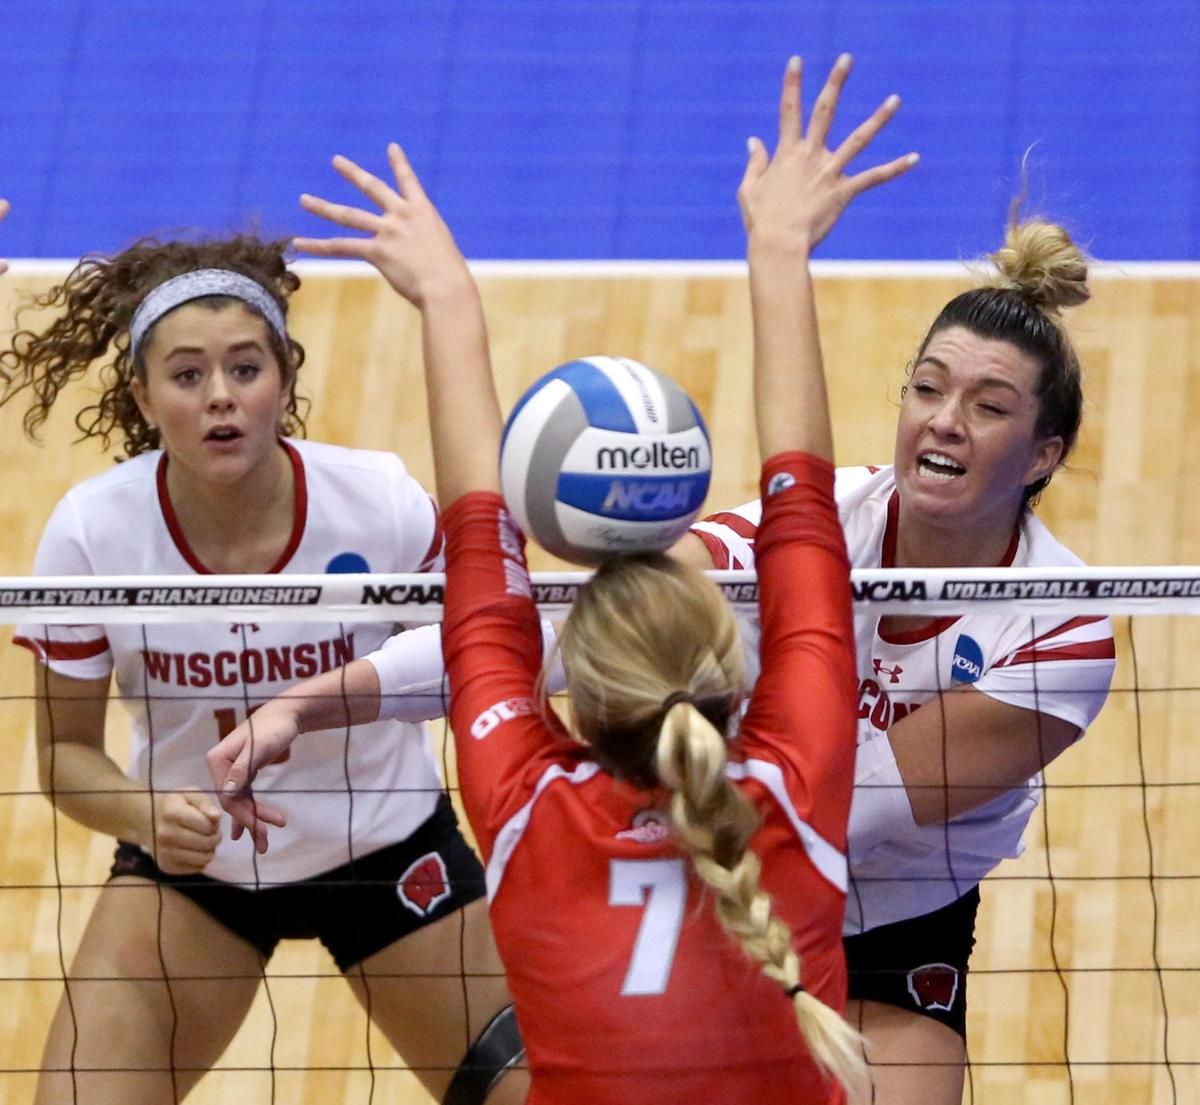 Badgers volleyball: No. 3 Wisconsin rallies past Ohio State, advances to Elite Eight of NCAA ...